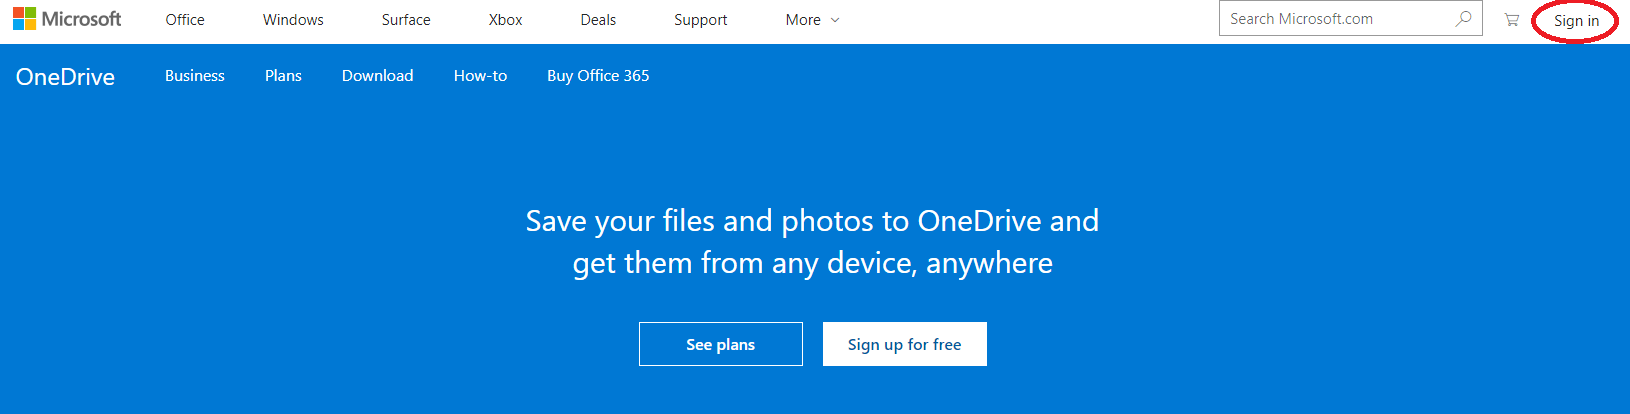 onedrive_sign_in_screen